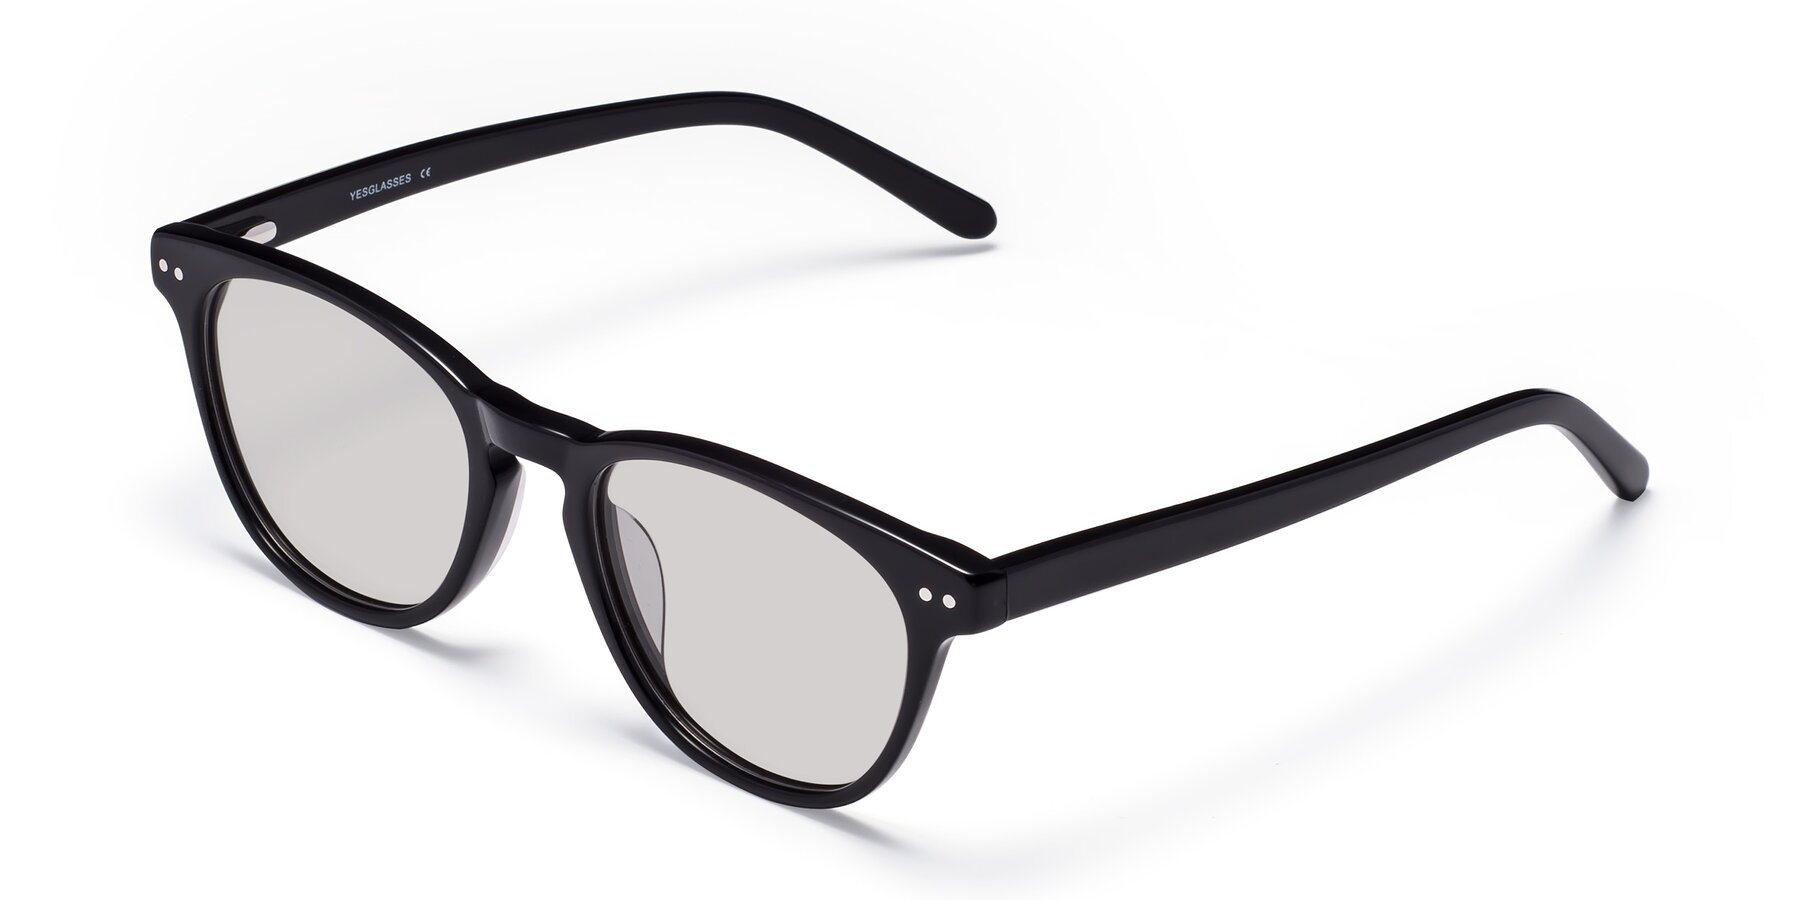 Angle of Blaze in Black with Light Gray Tinted Lenses